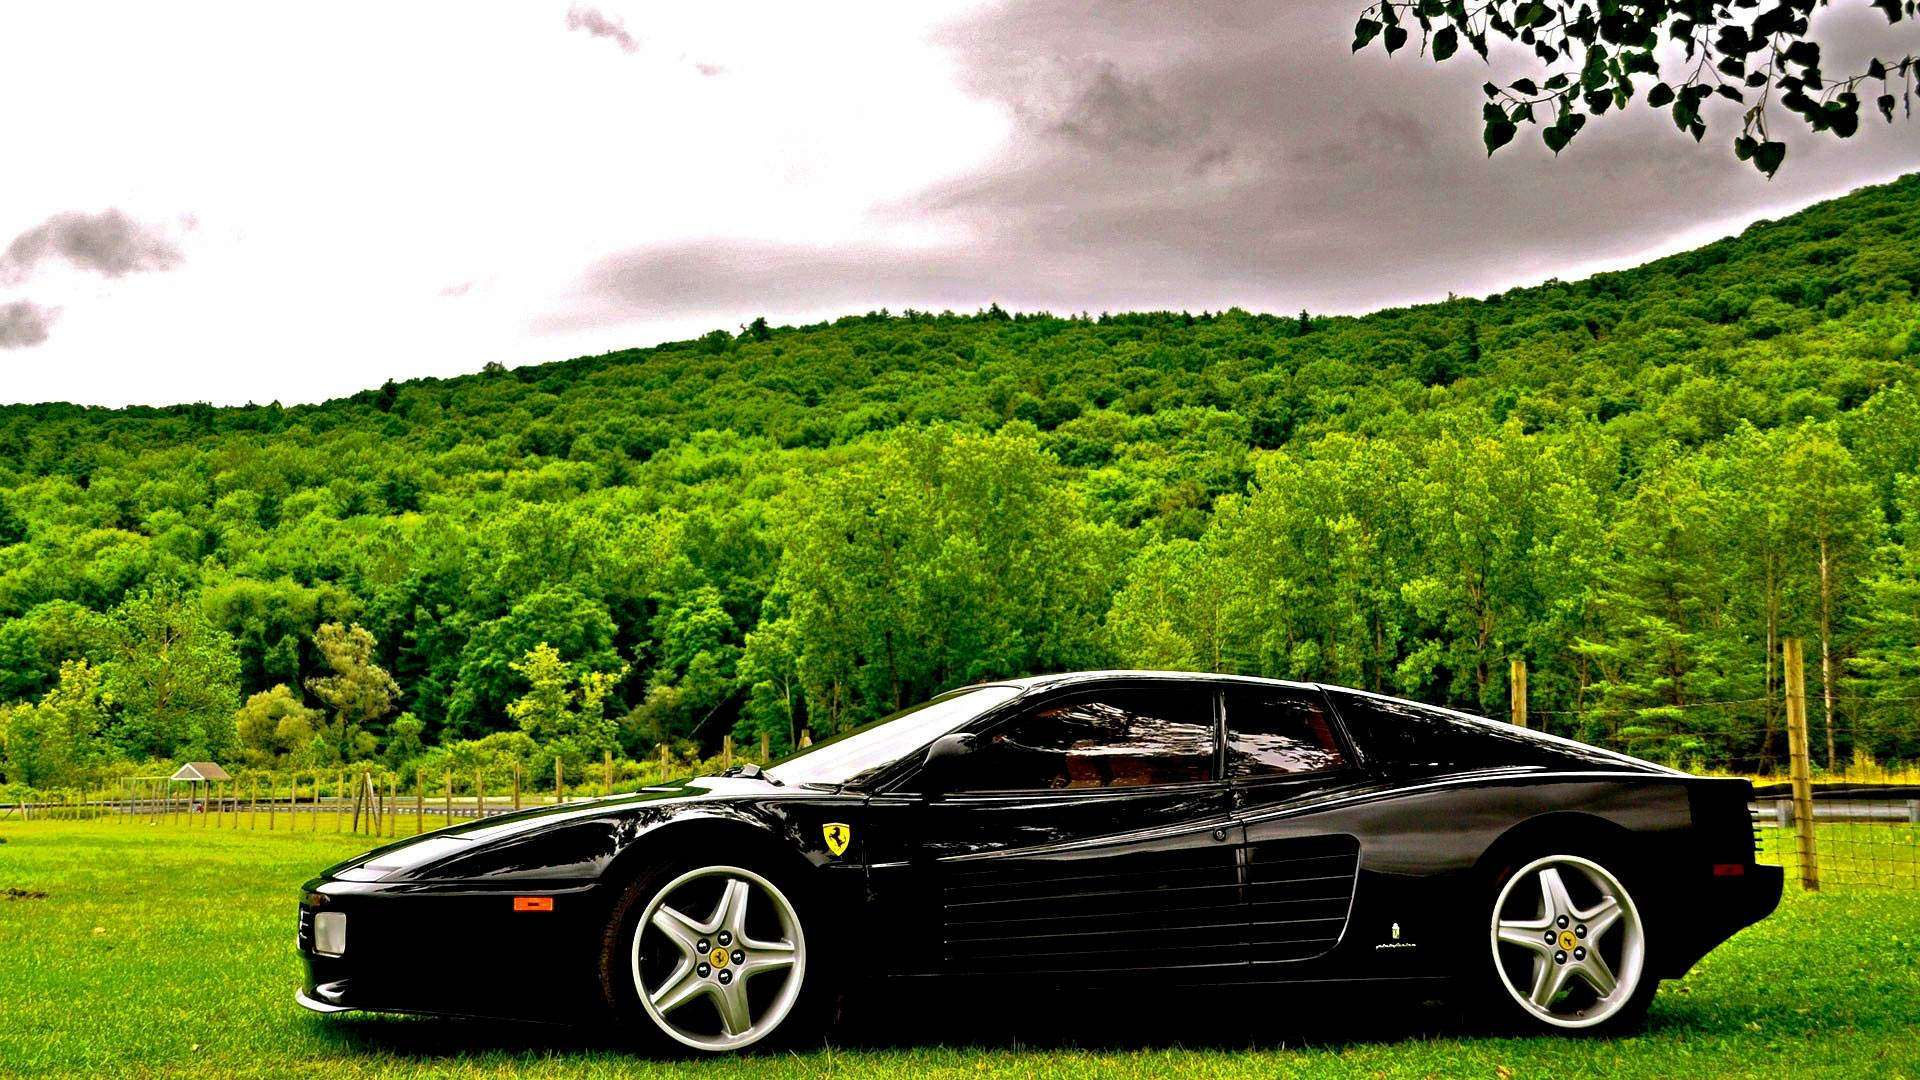 download Ferrari Car Wallpaper